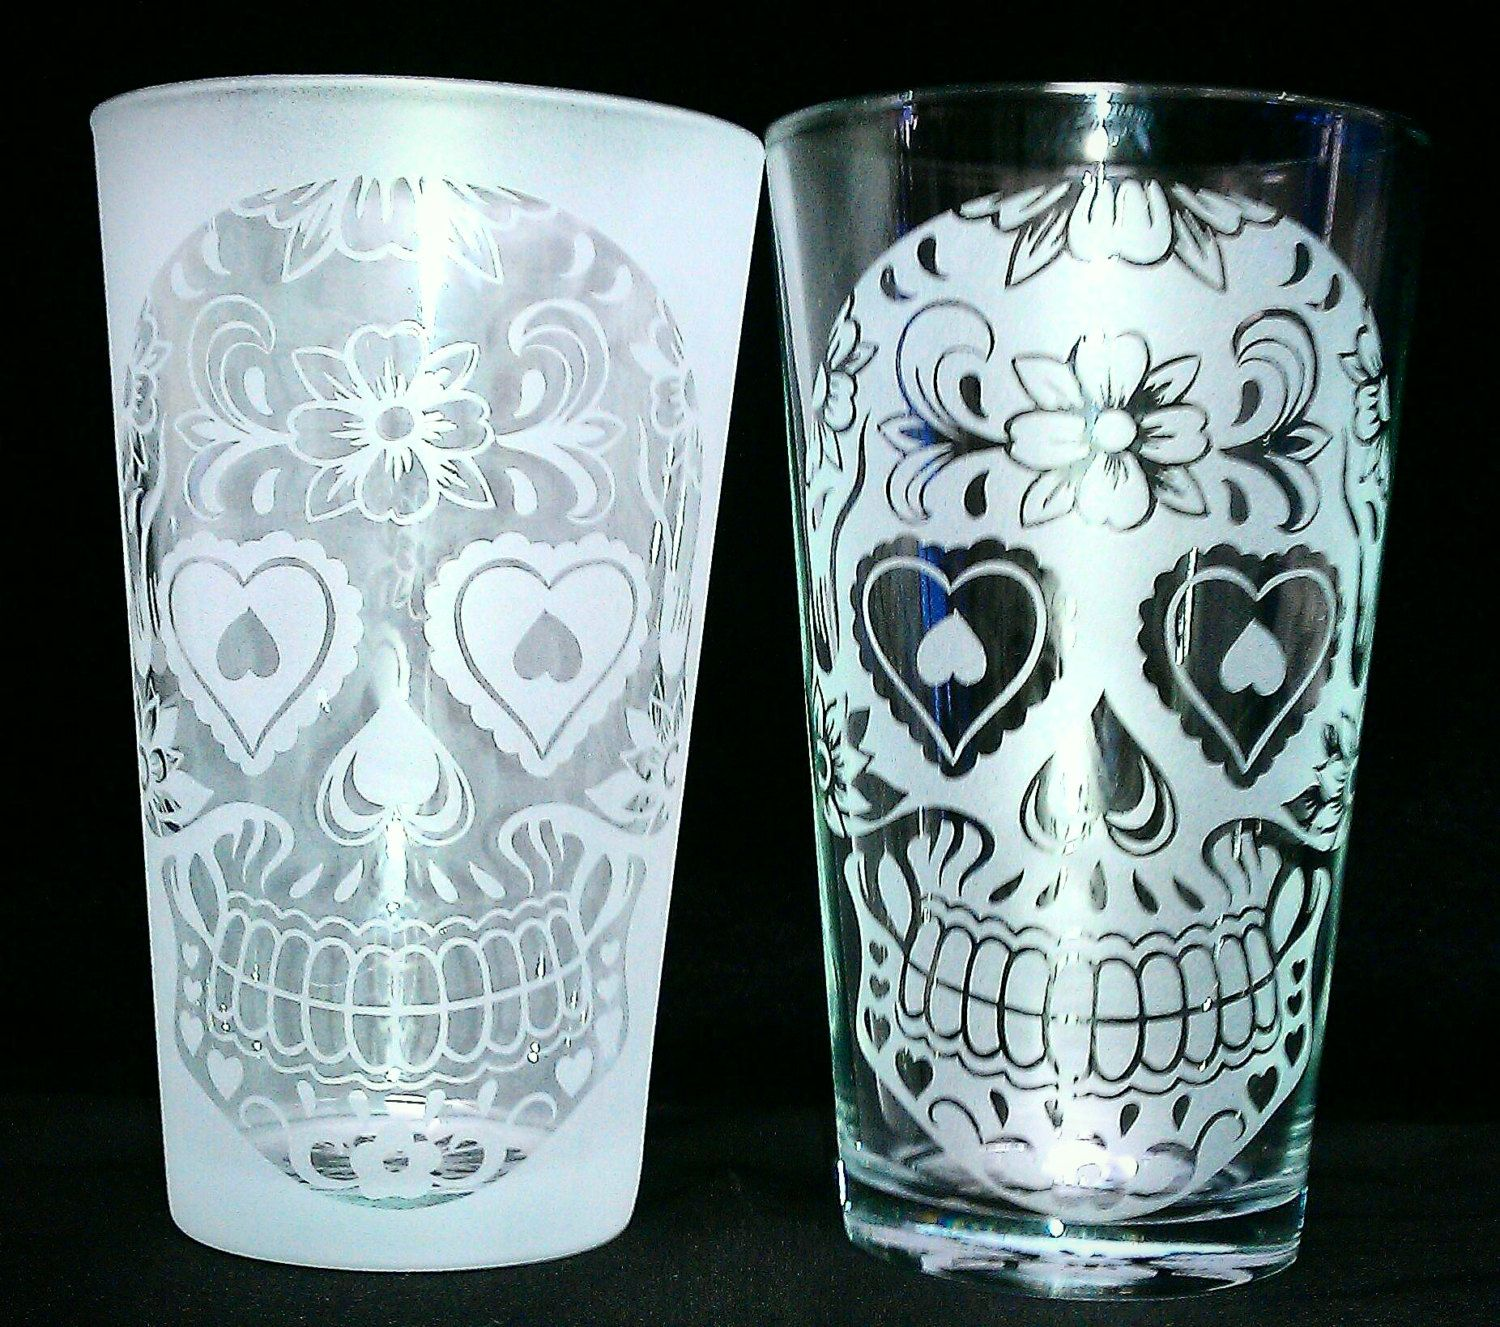 Sugar Skull Flower & Heart Drinking Glass | Sugar skulls